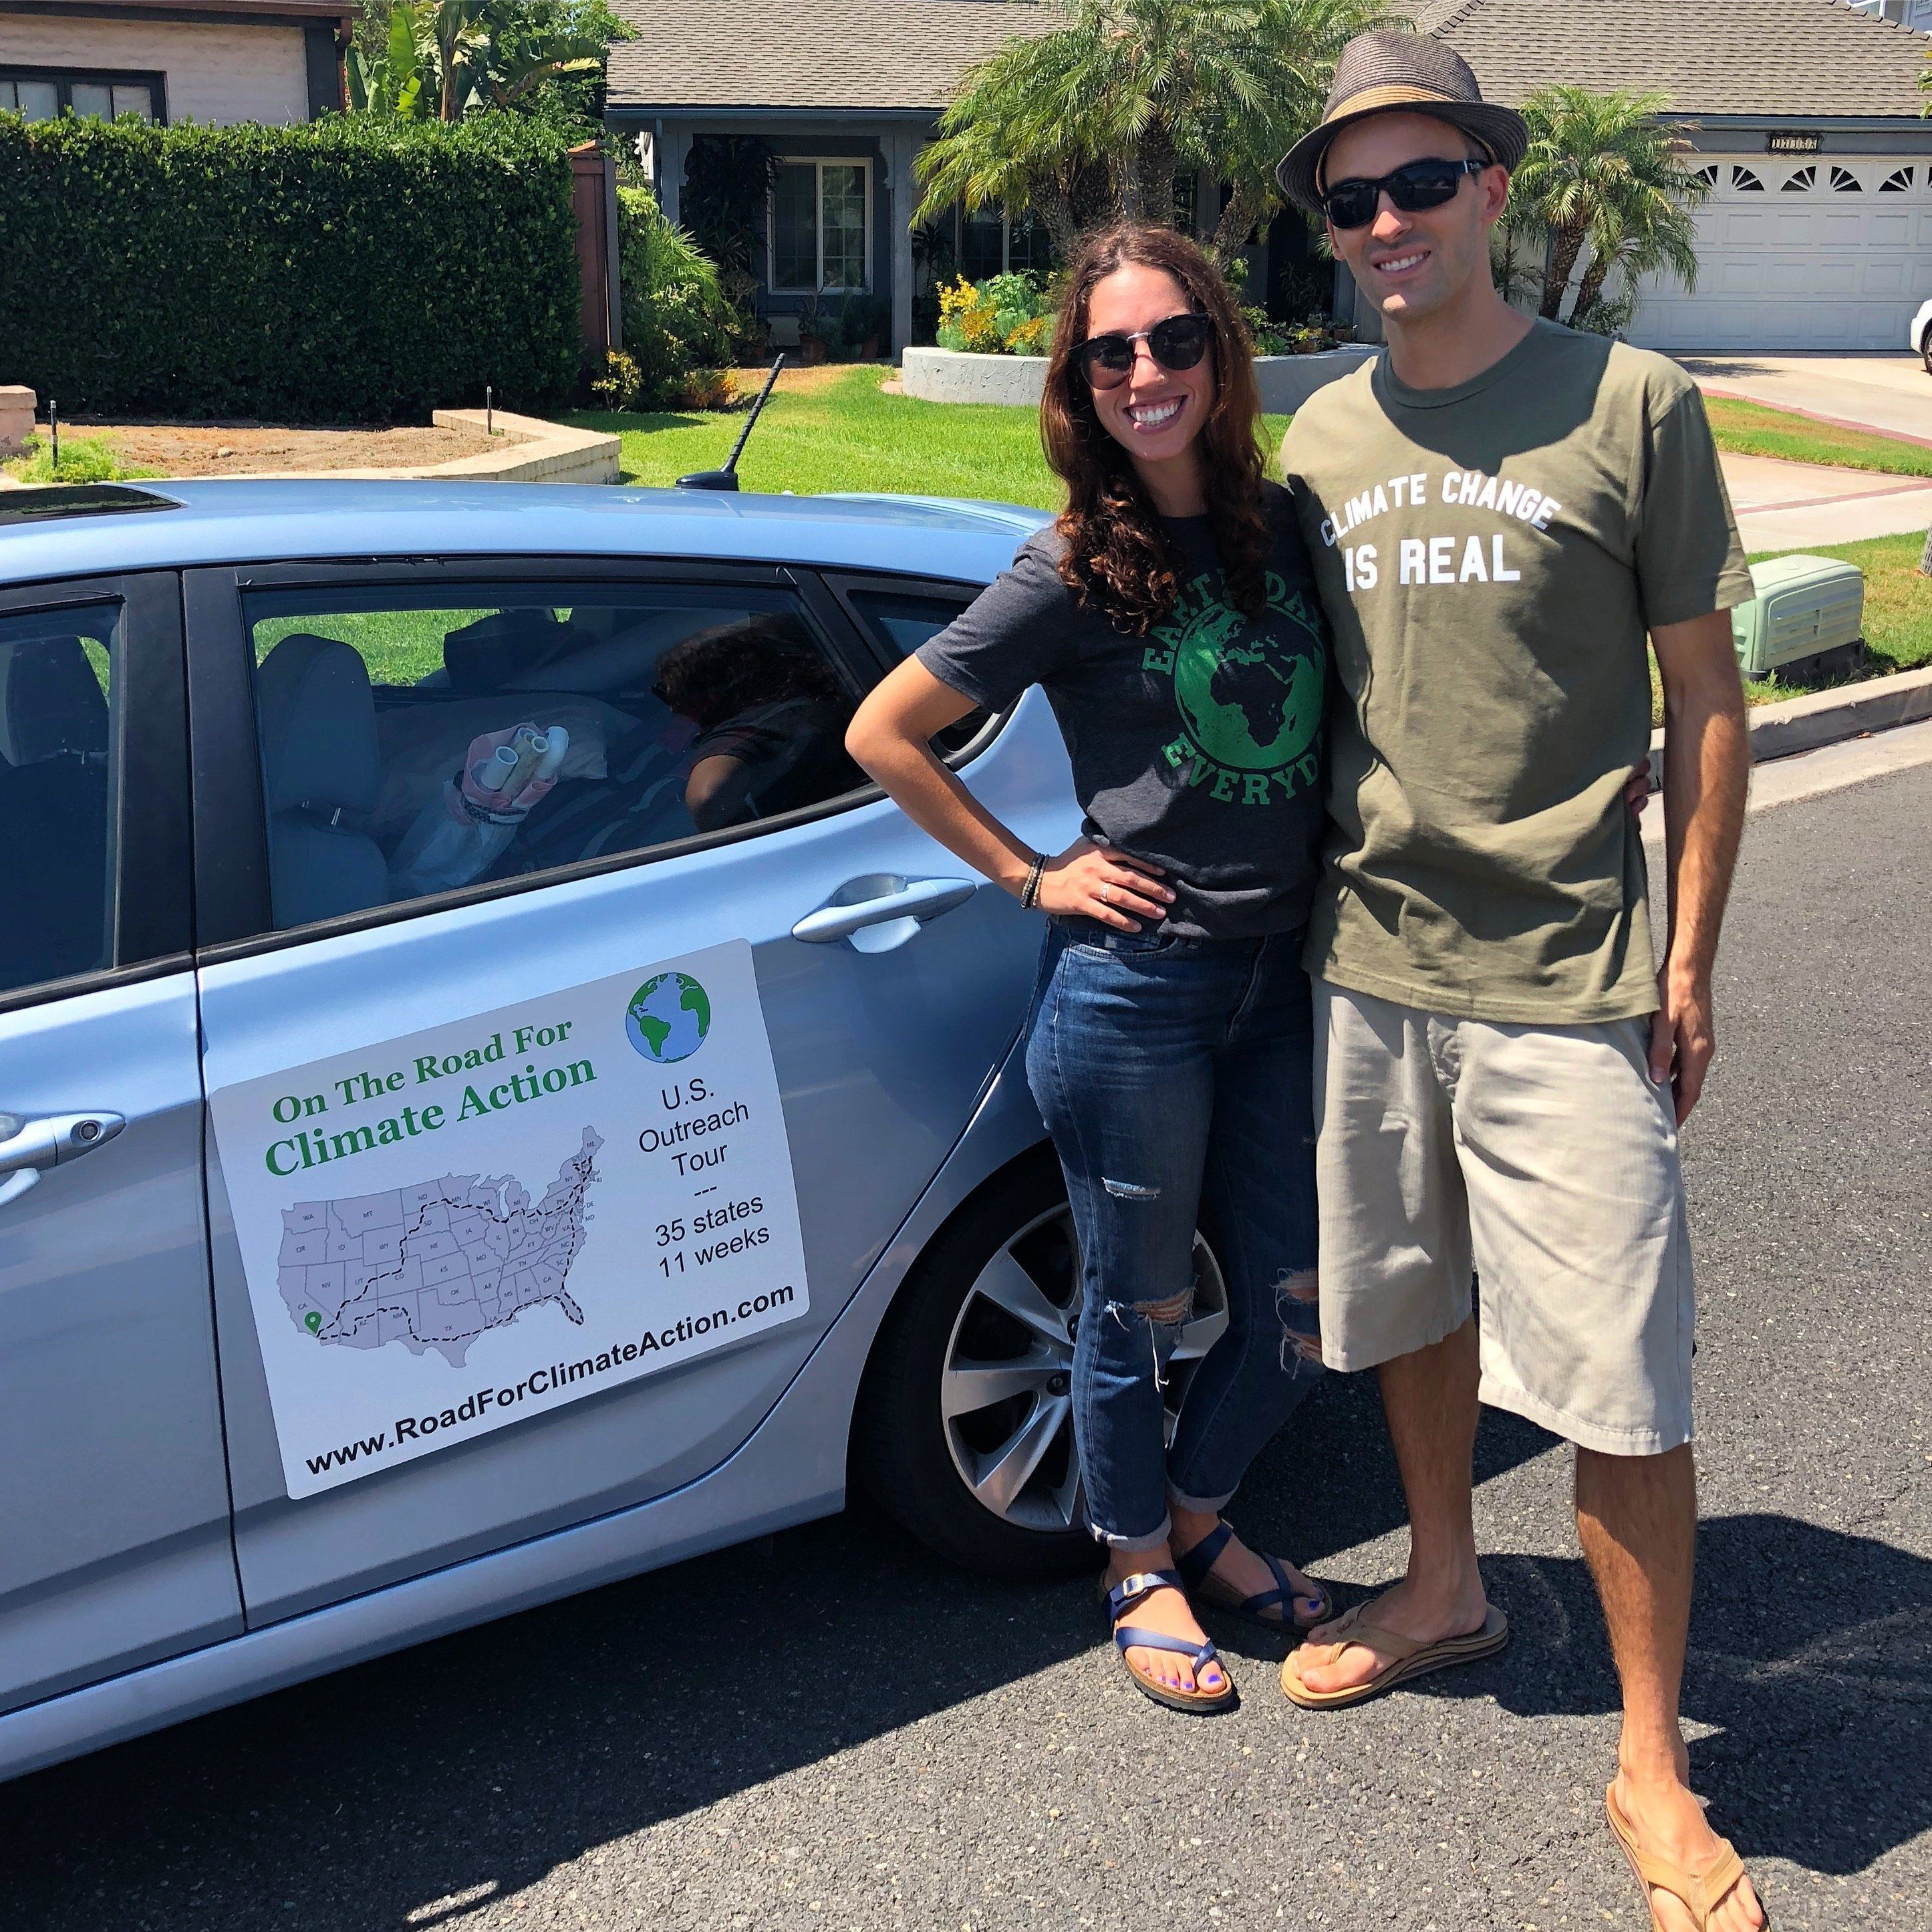 Climate change activists Shahir Masri and Athina Simolaris shortly before departing Orange County Calif for a road trip across America to raise awareness about global warming